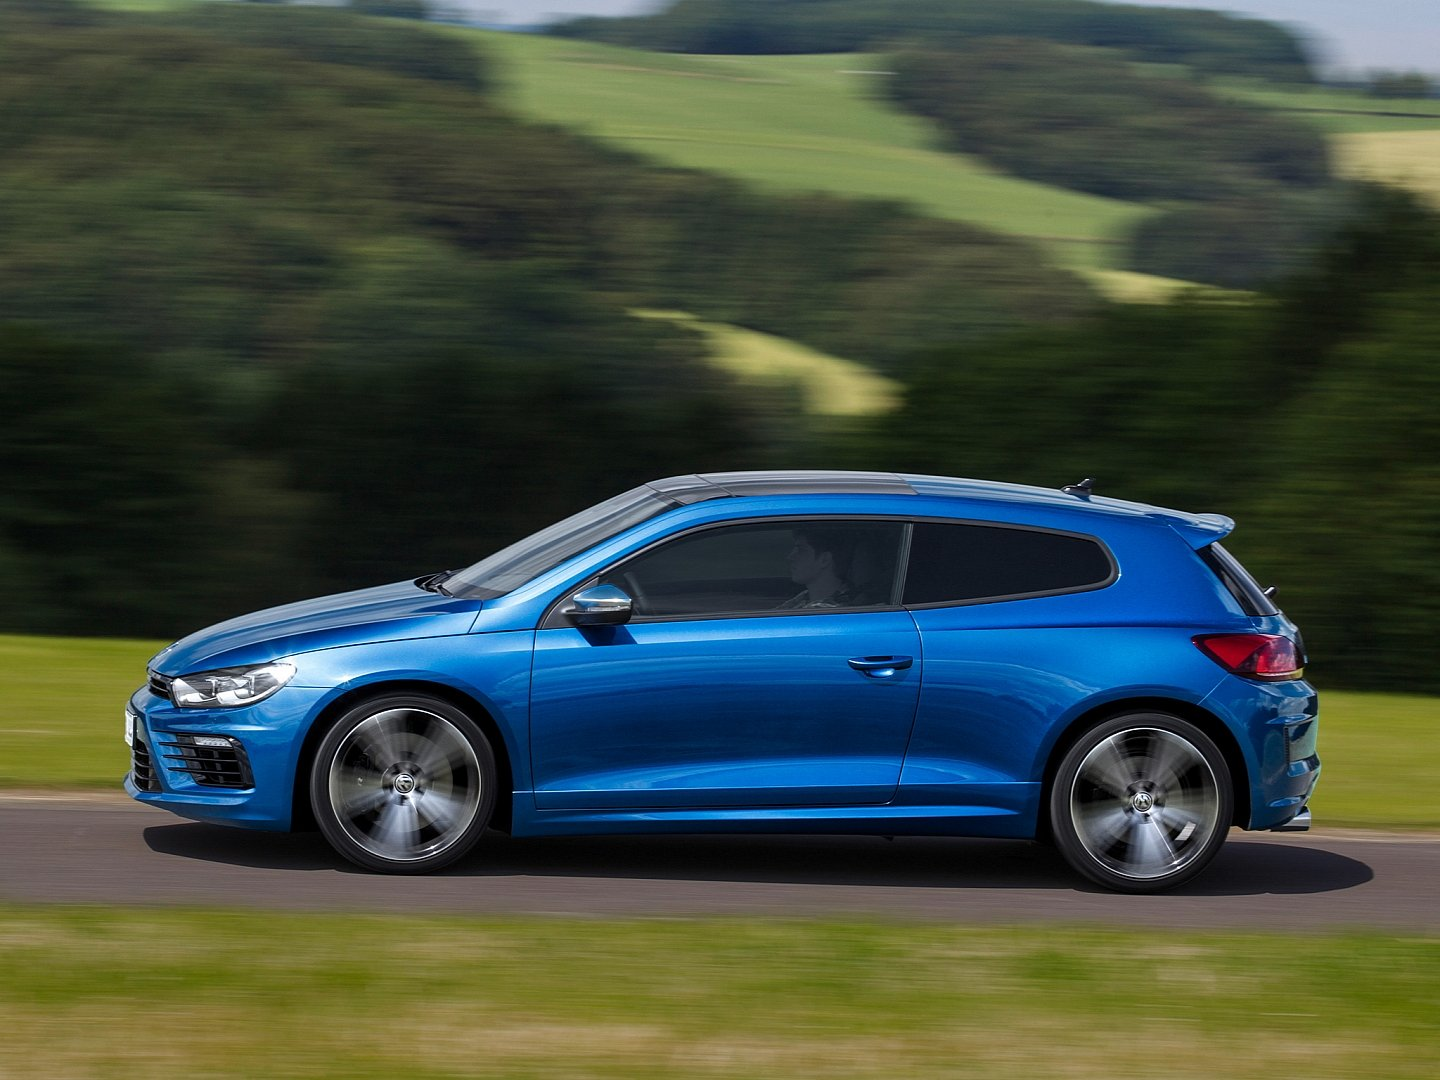 scirocco-radditional-20-ps-accelerates-06-seconds-faster-to-100-km-h-than-its-predecessor-1080p-6